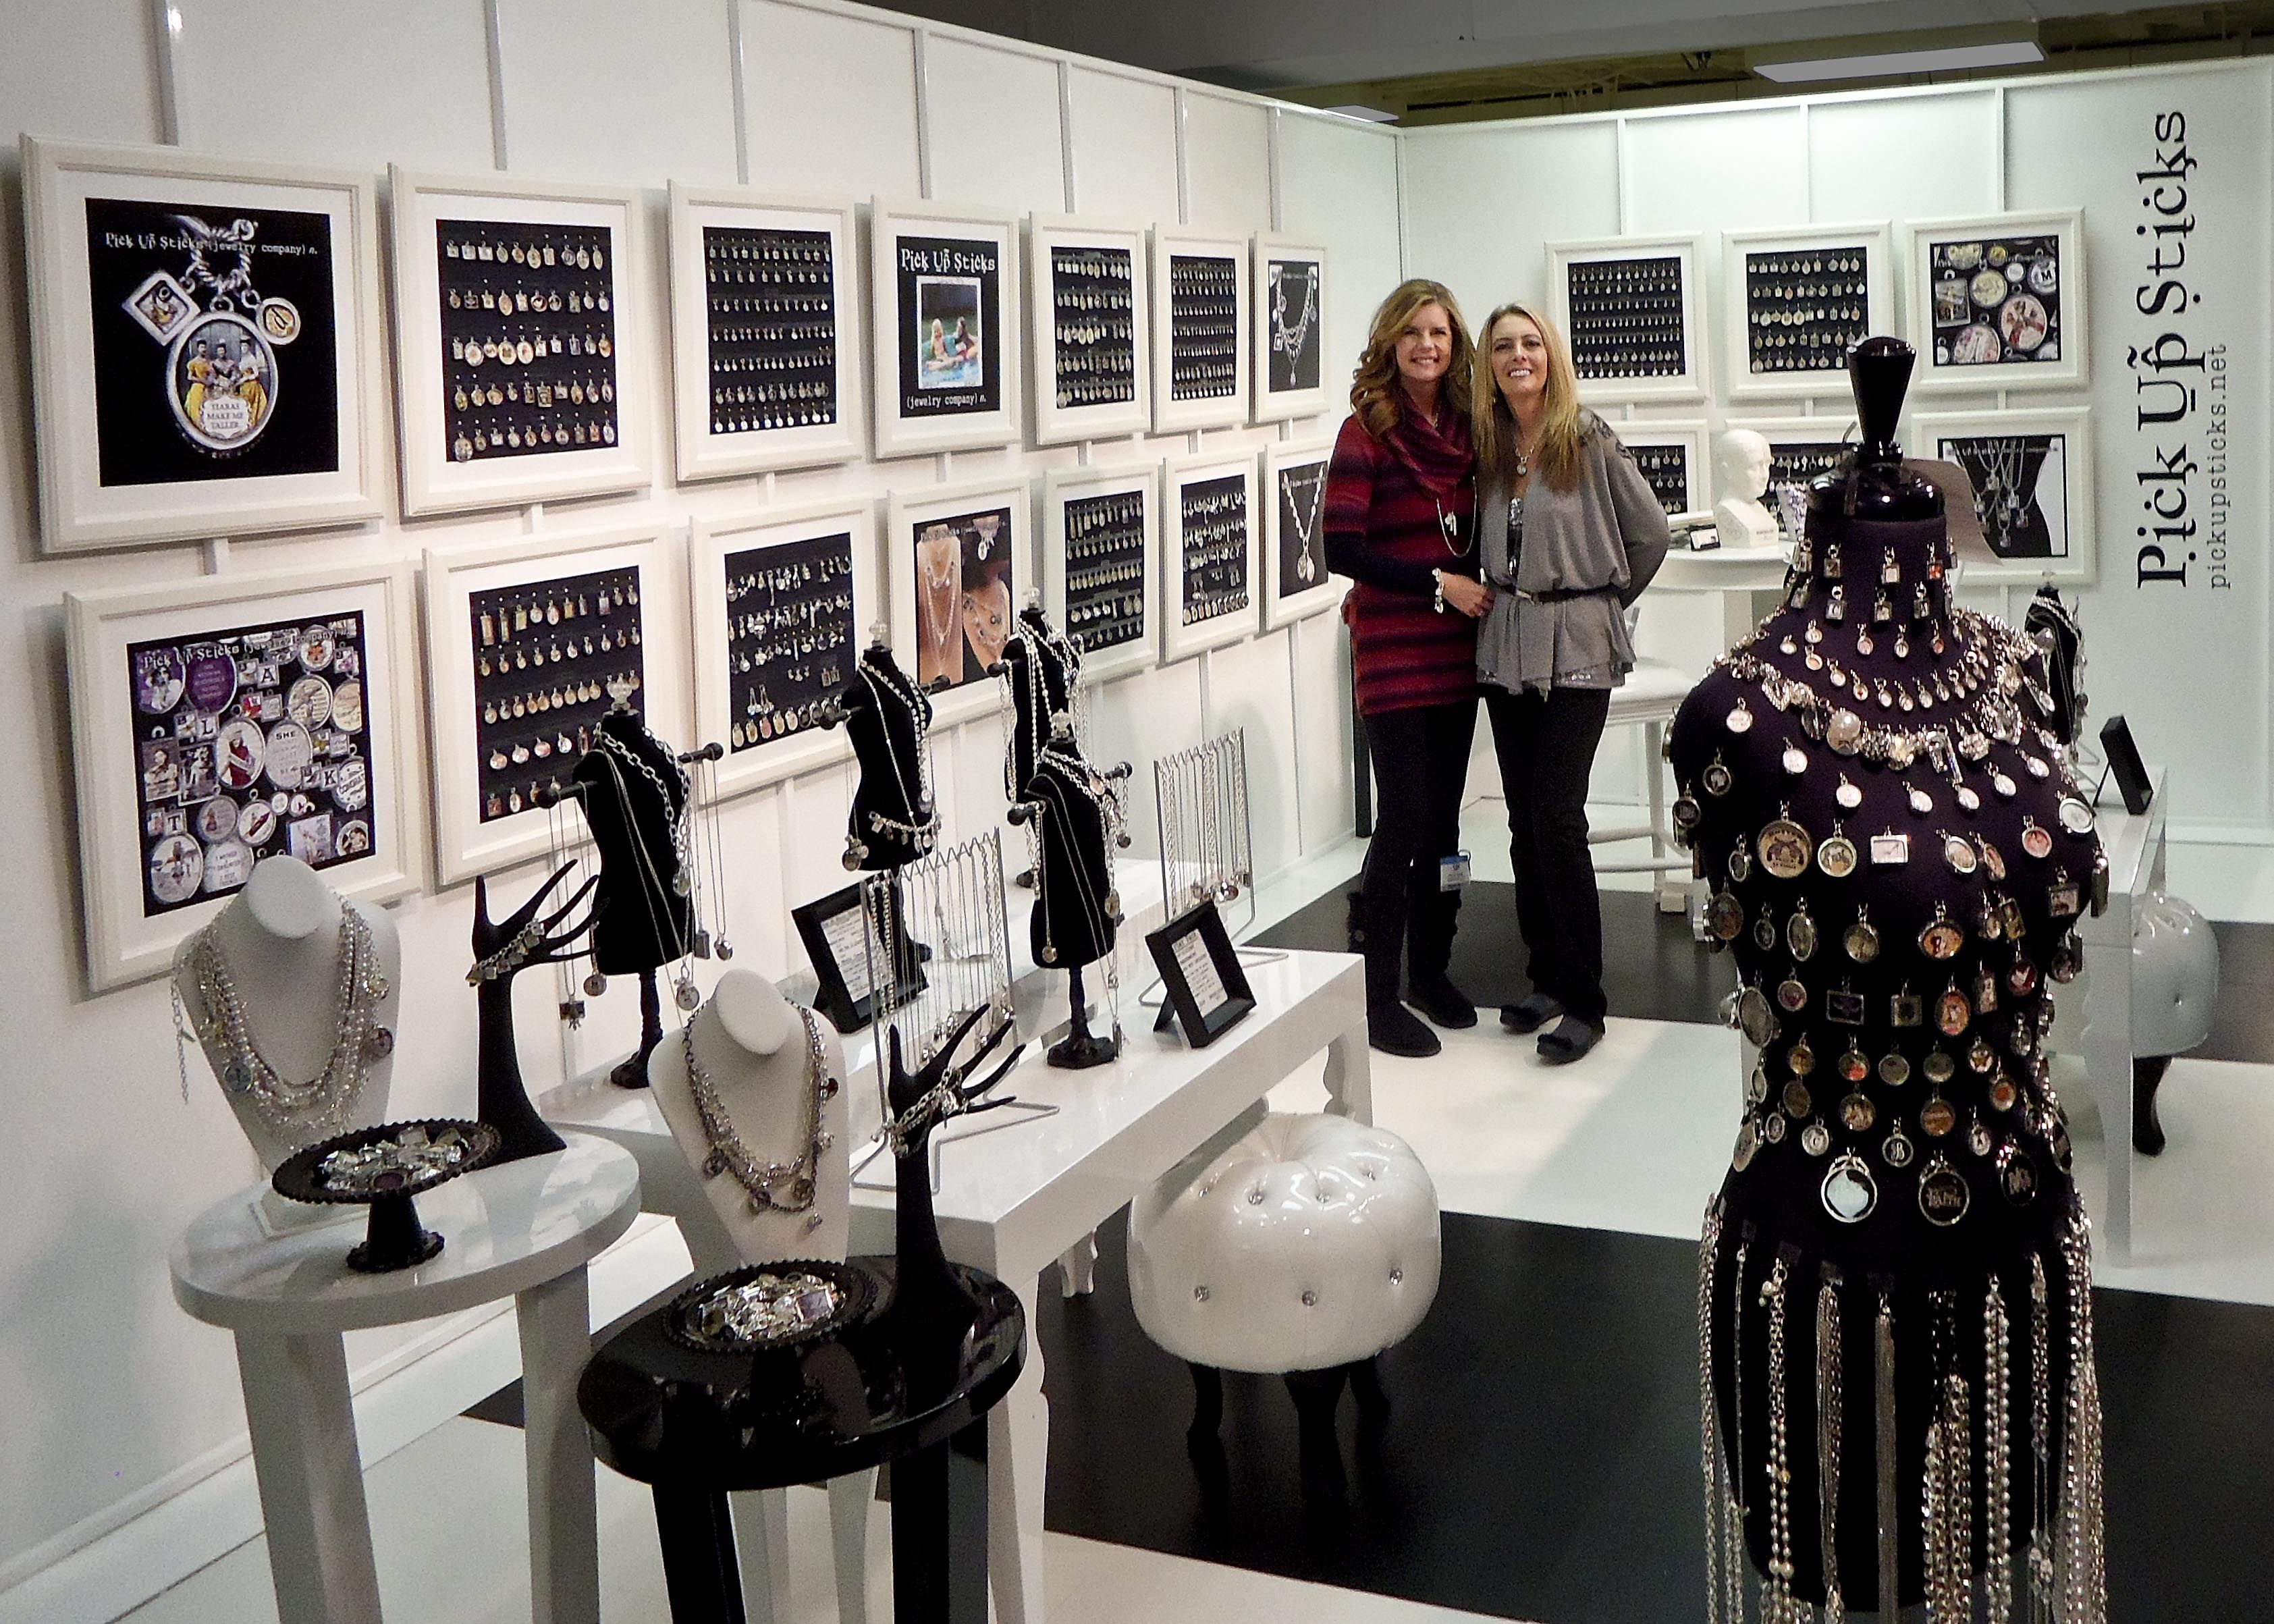 Window display ideas for jewelry  image result for americasmart booth pictures  tradeshow booth